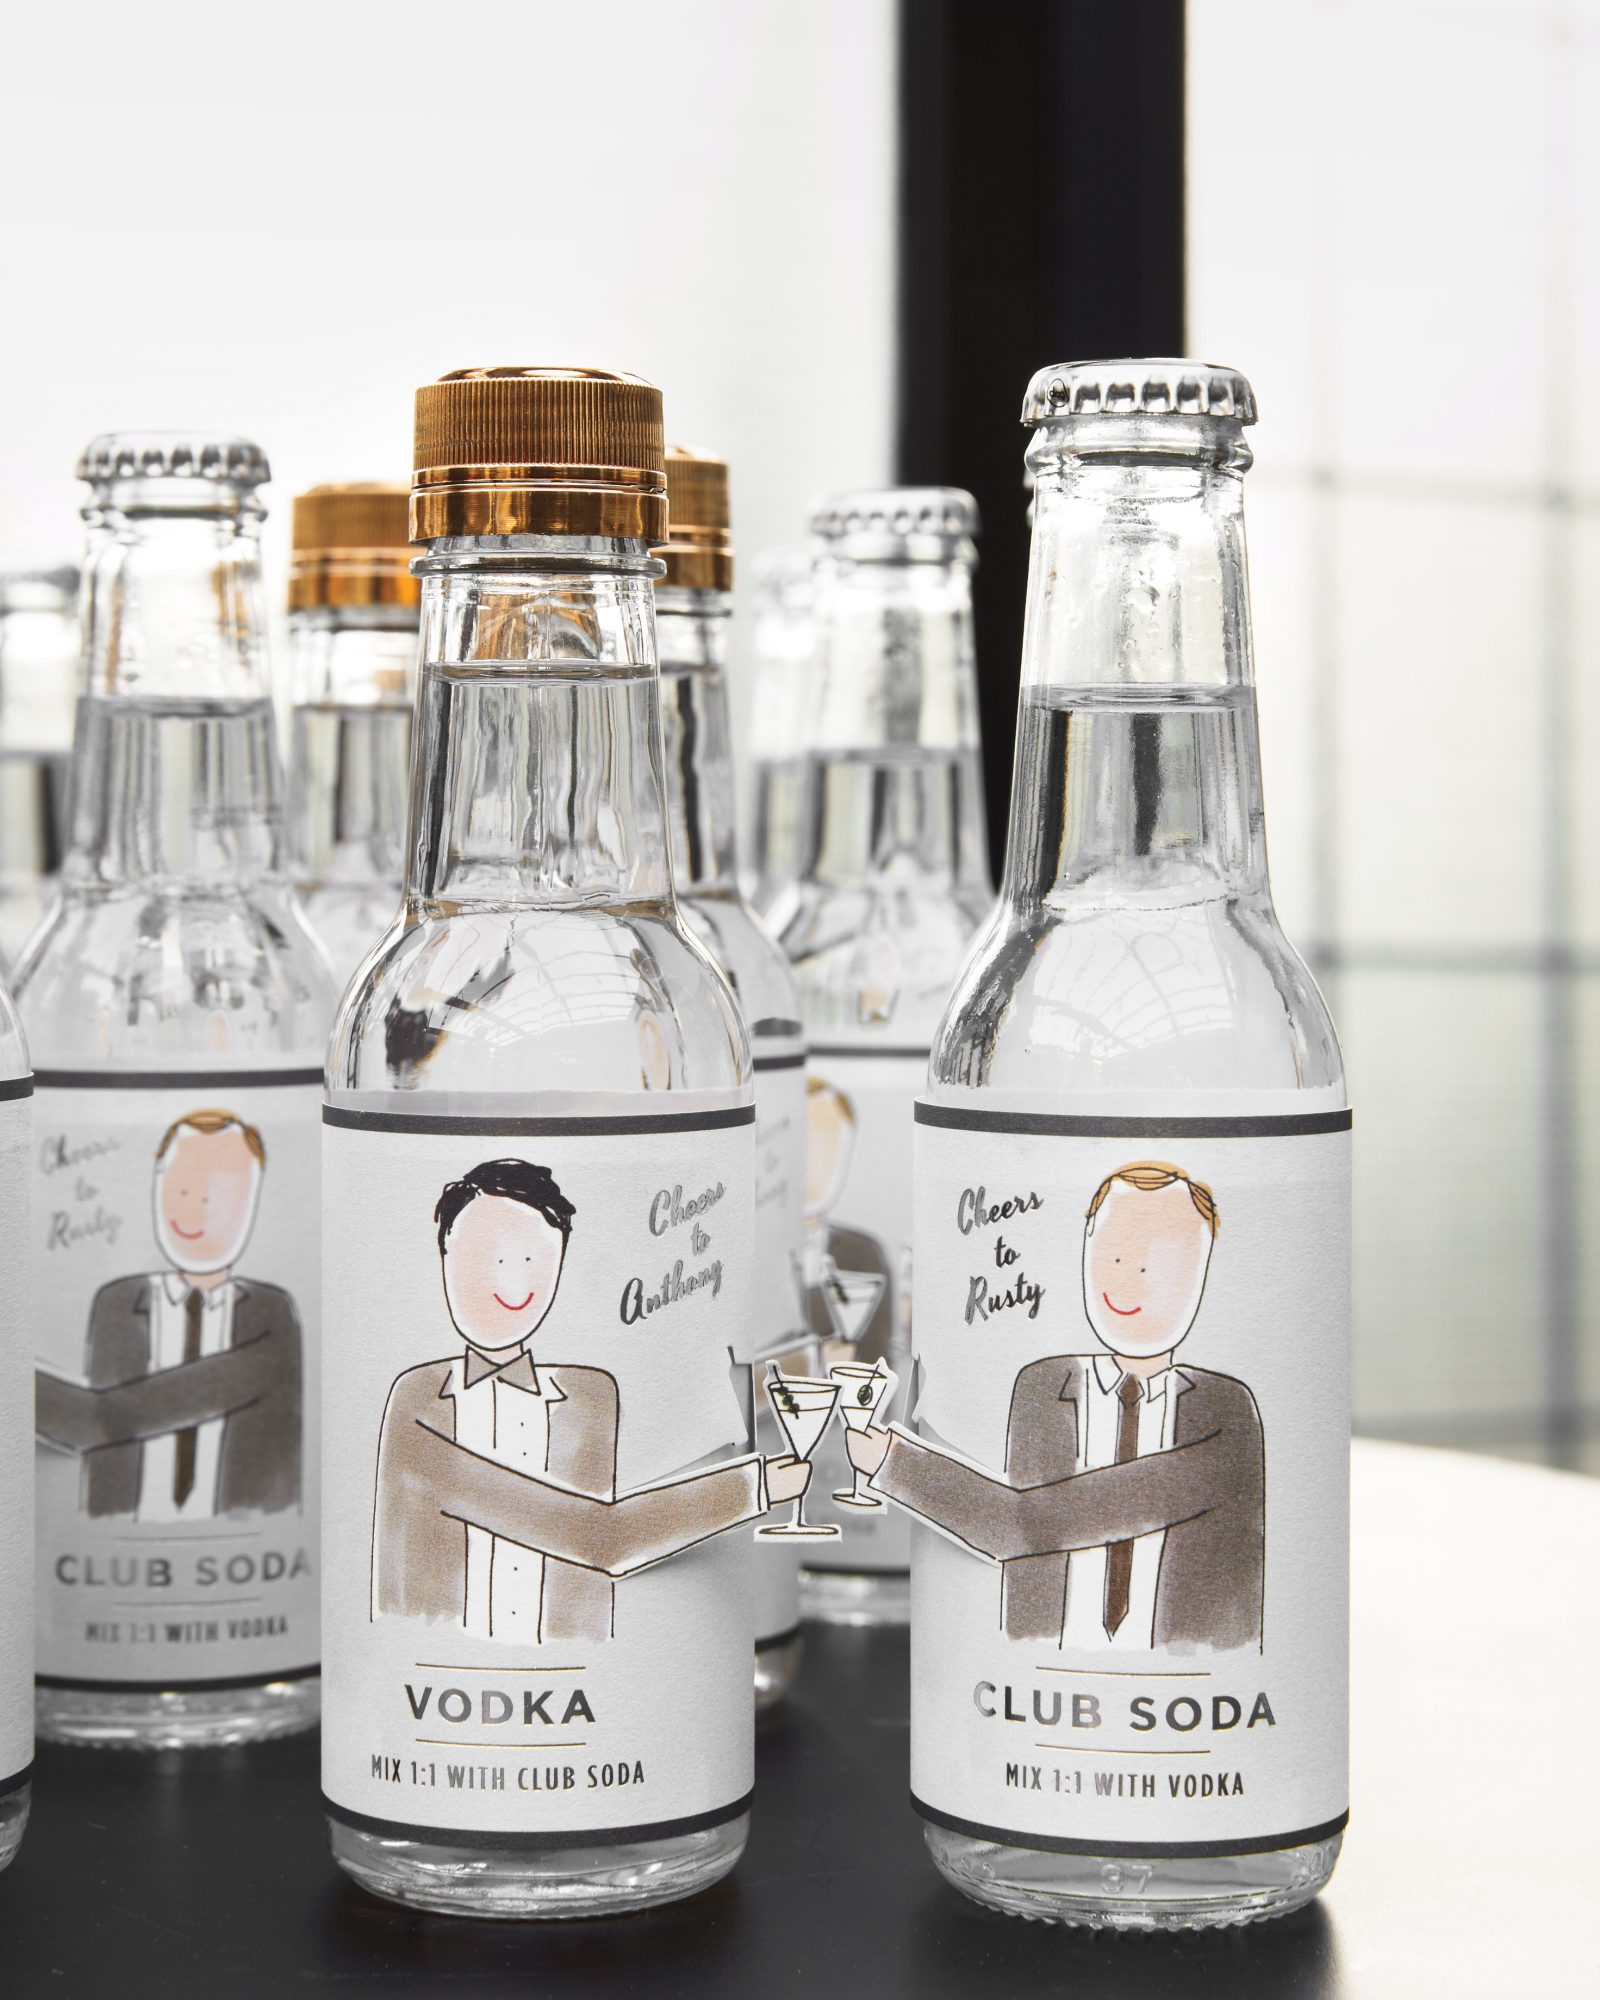 rw-anthony-rusty-drawing-gifts-cocktail-13-354-00431-wd110176.jpg